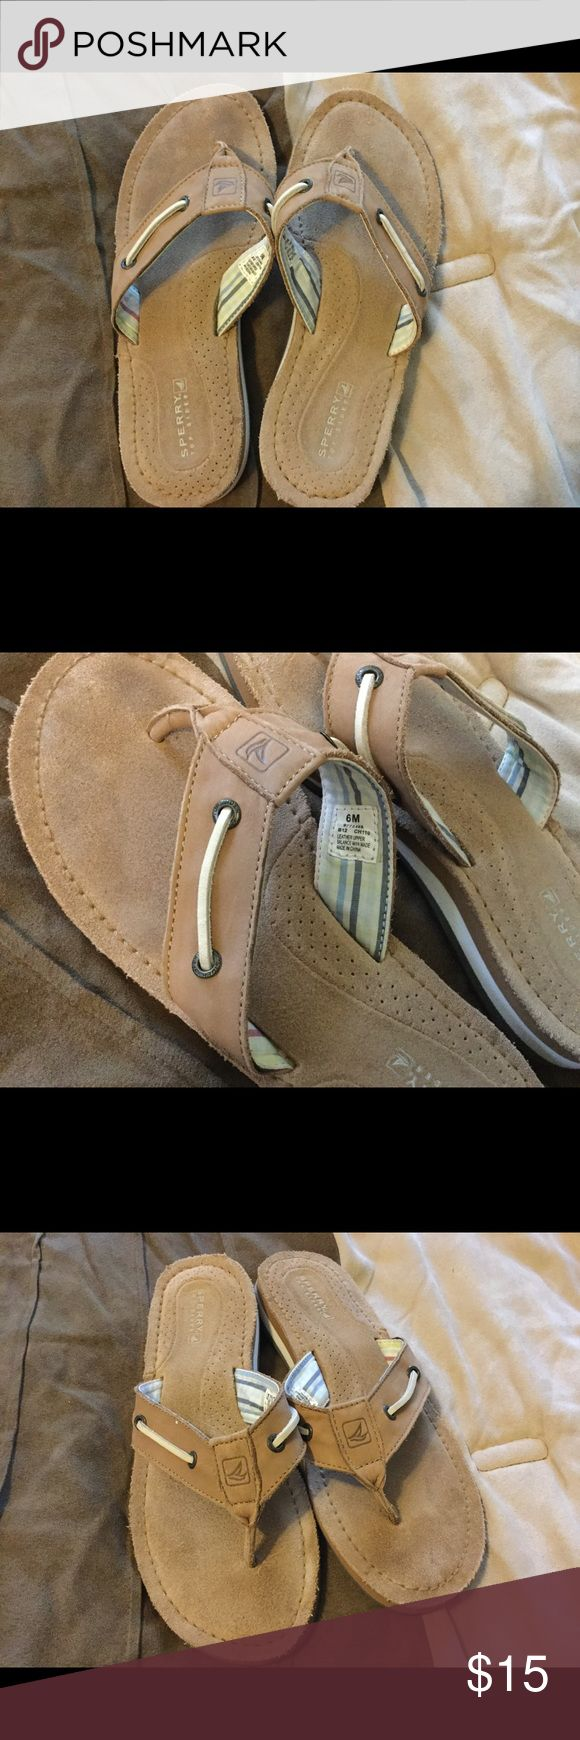 Sperry Sandals women's 6 I bought these new and only wore them for our two week vacation. Great used condition. Sperry Shoes Sandals